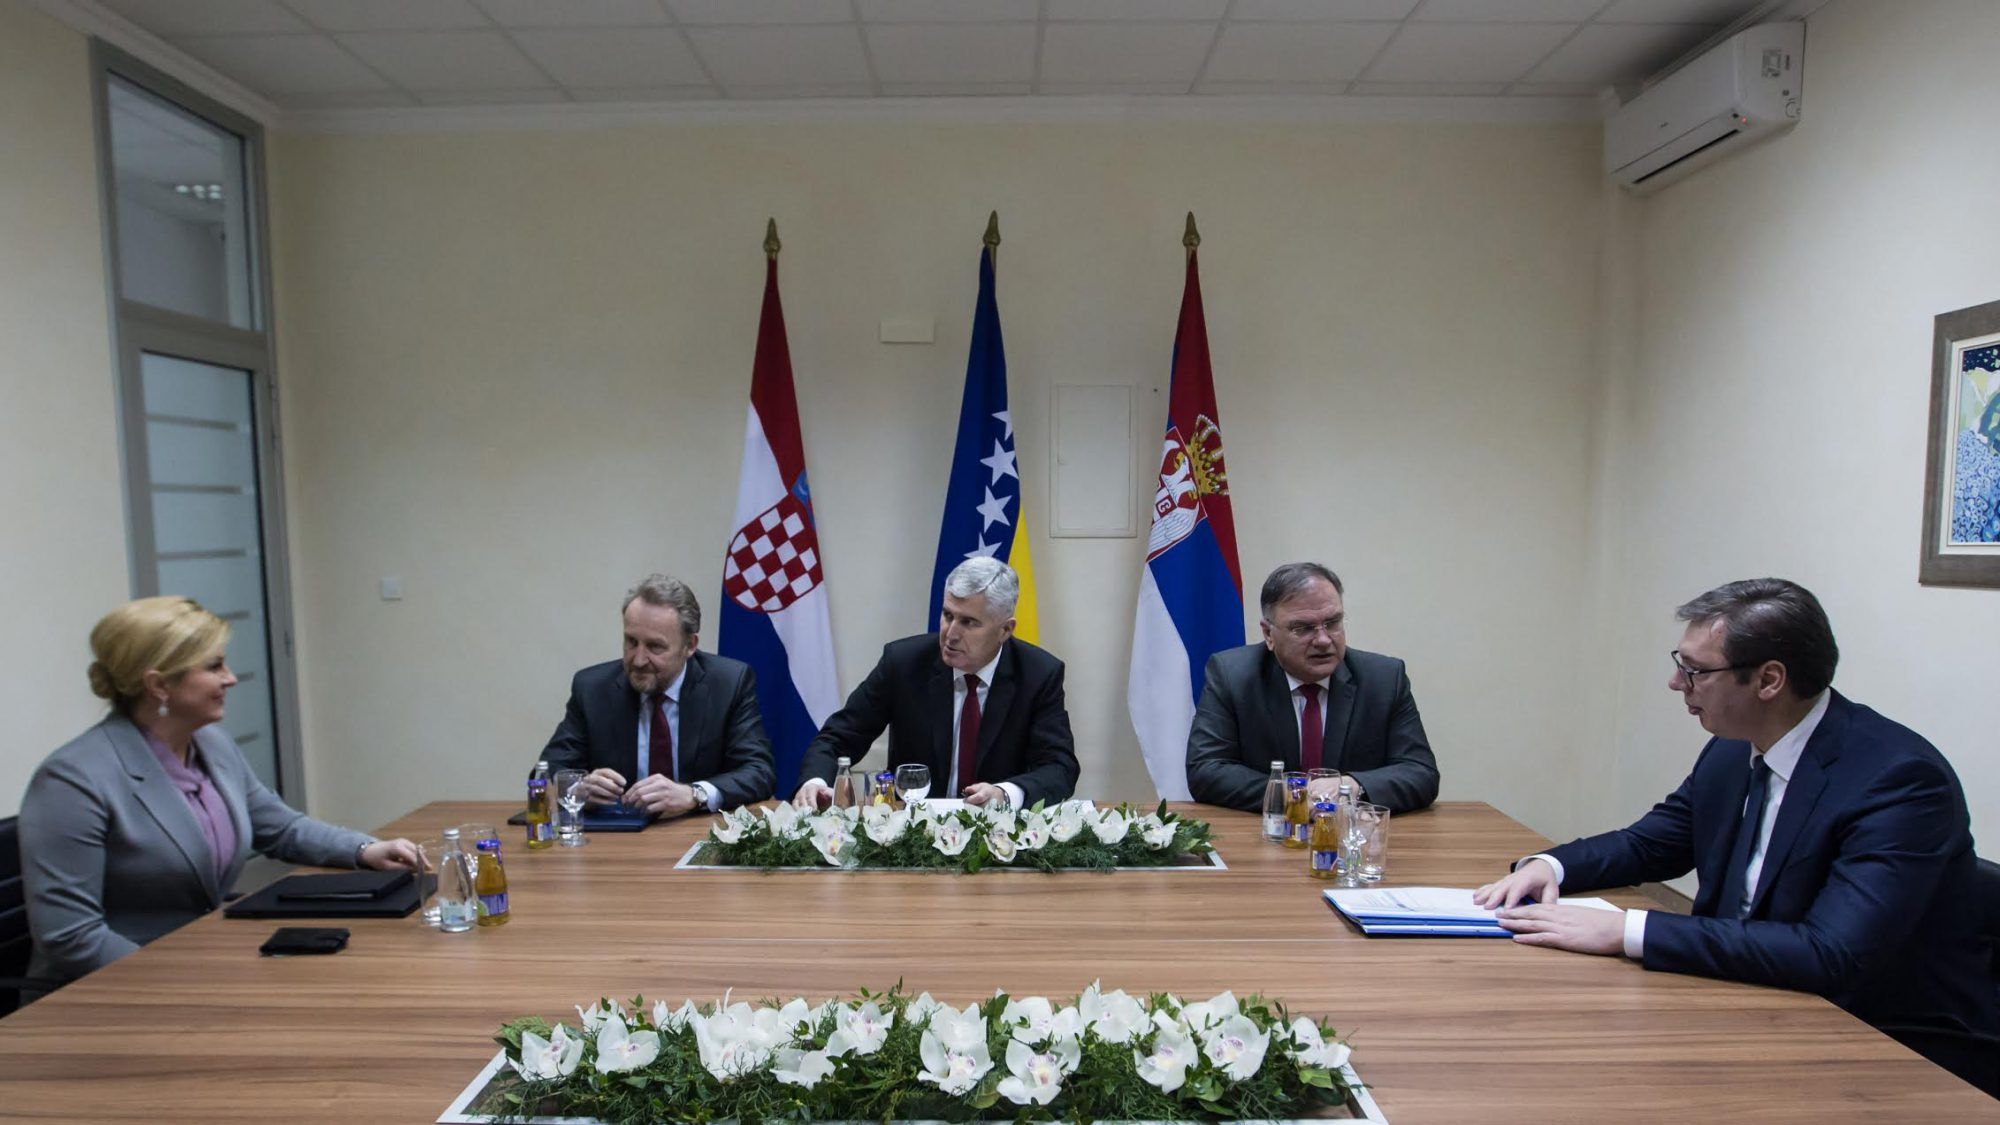 BiH-Serbia-Croatia meeting in Mostar pointed out the problem of borders